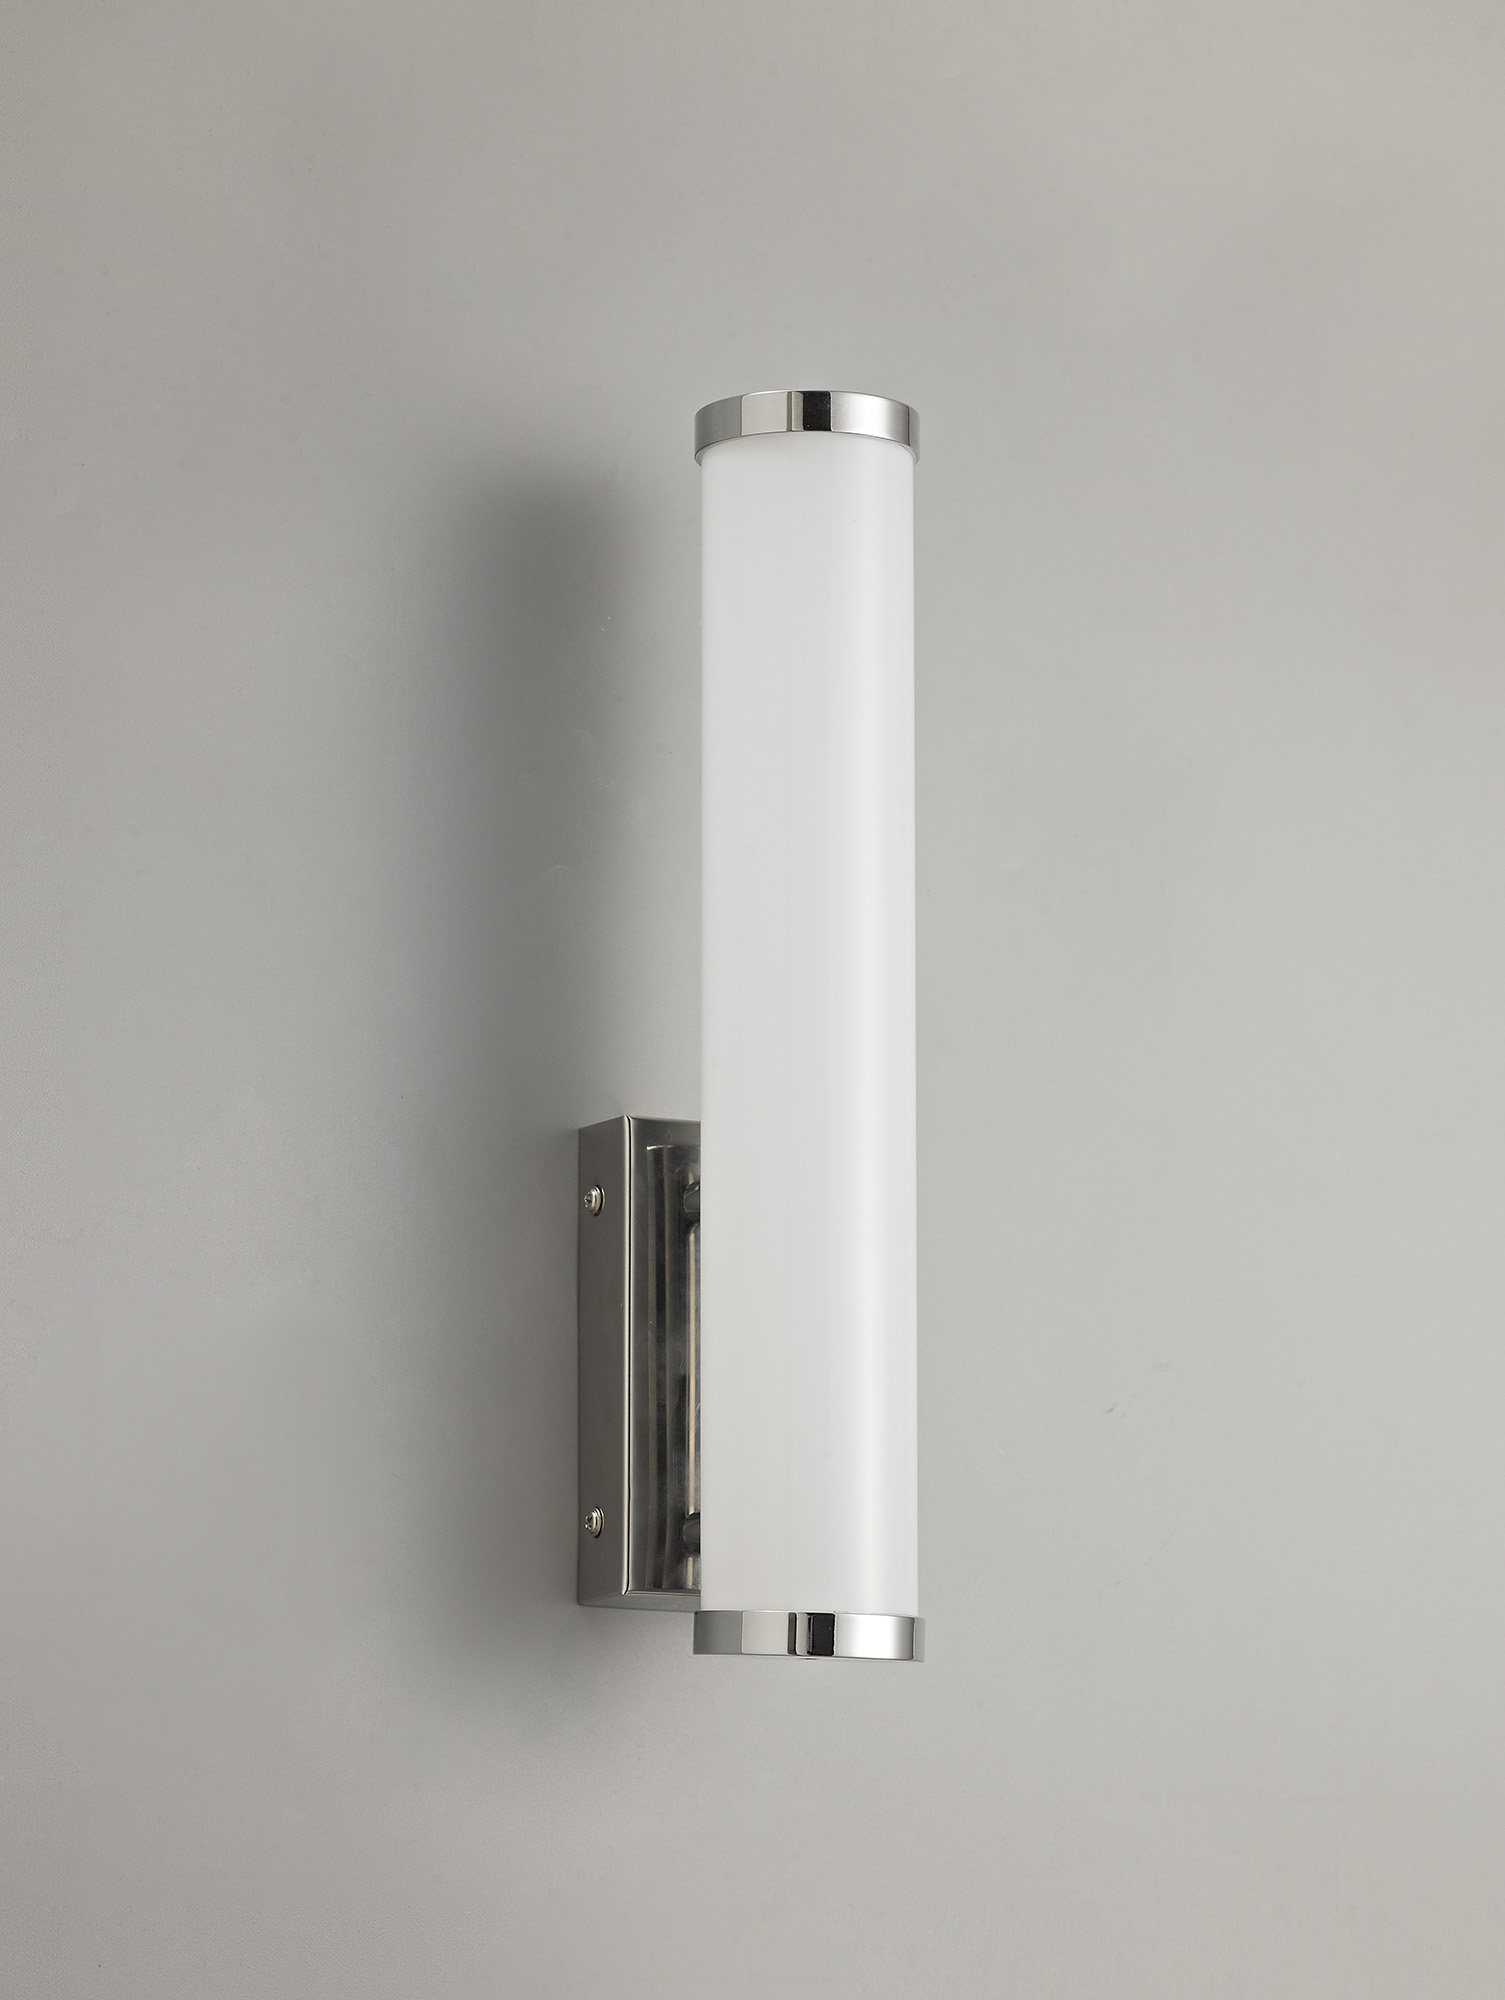 Wall Lamp Small, 1 x 9W LED, 4000K, 621lm, IP44, Polished Chrome, 3yrs Warranty